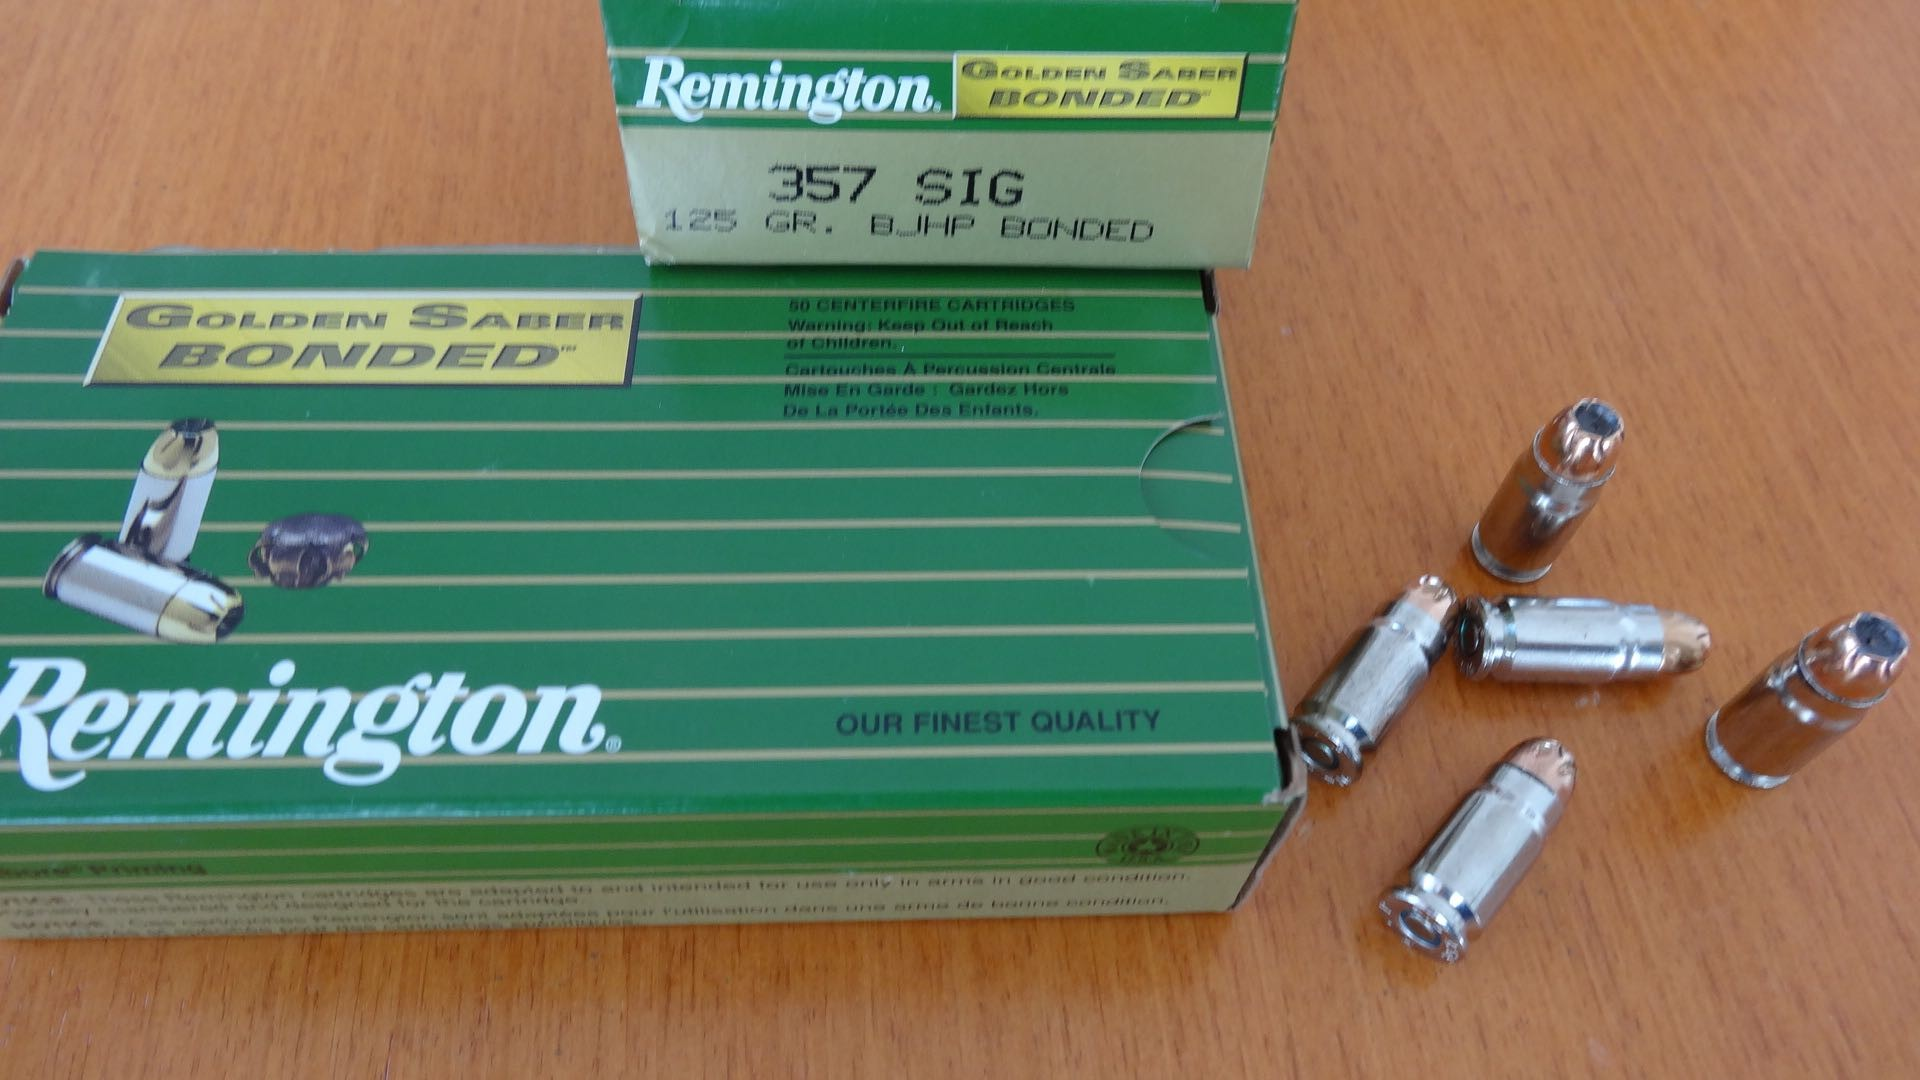 Remington Golden Saber Bonded .357 Sig. 125 Gr.